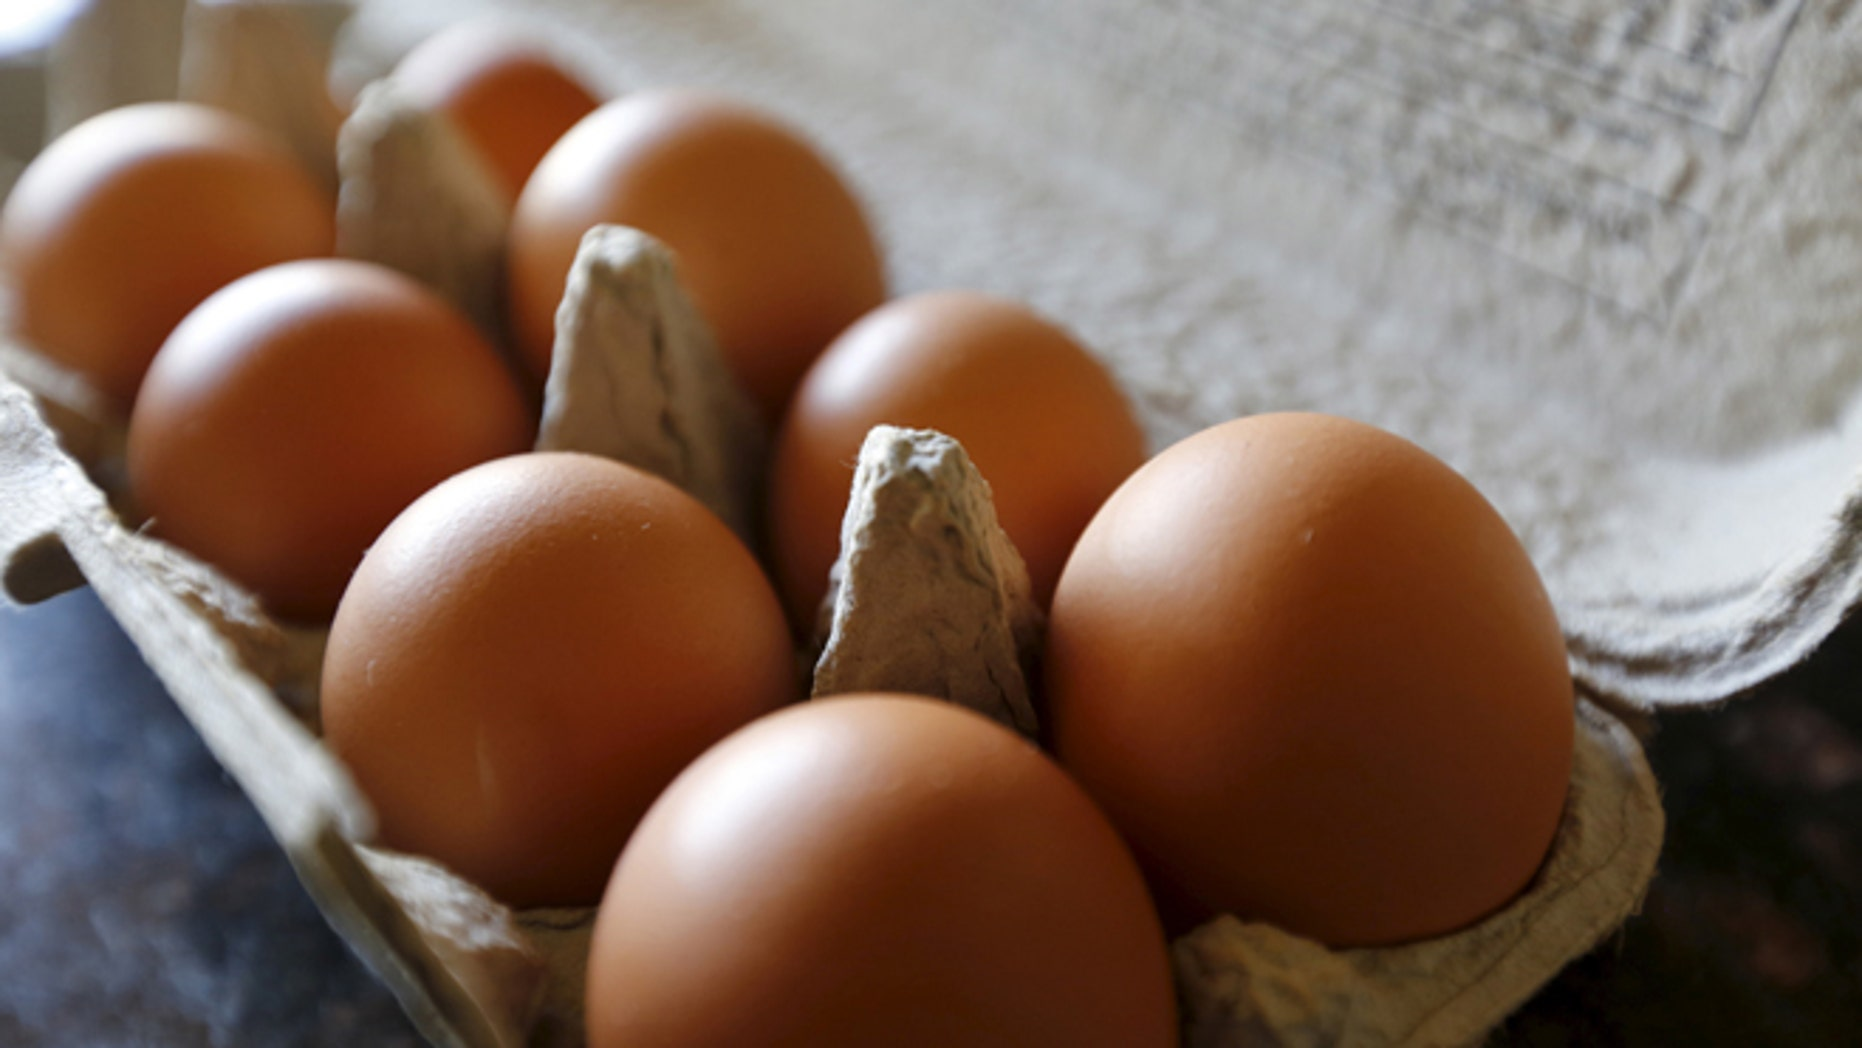 Aug. 17, 2015: Brown eggs are shown in their carton.